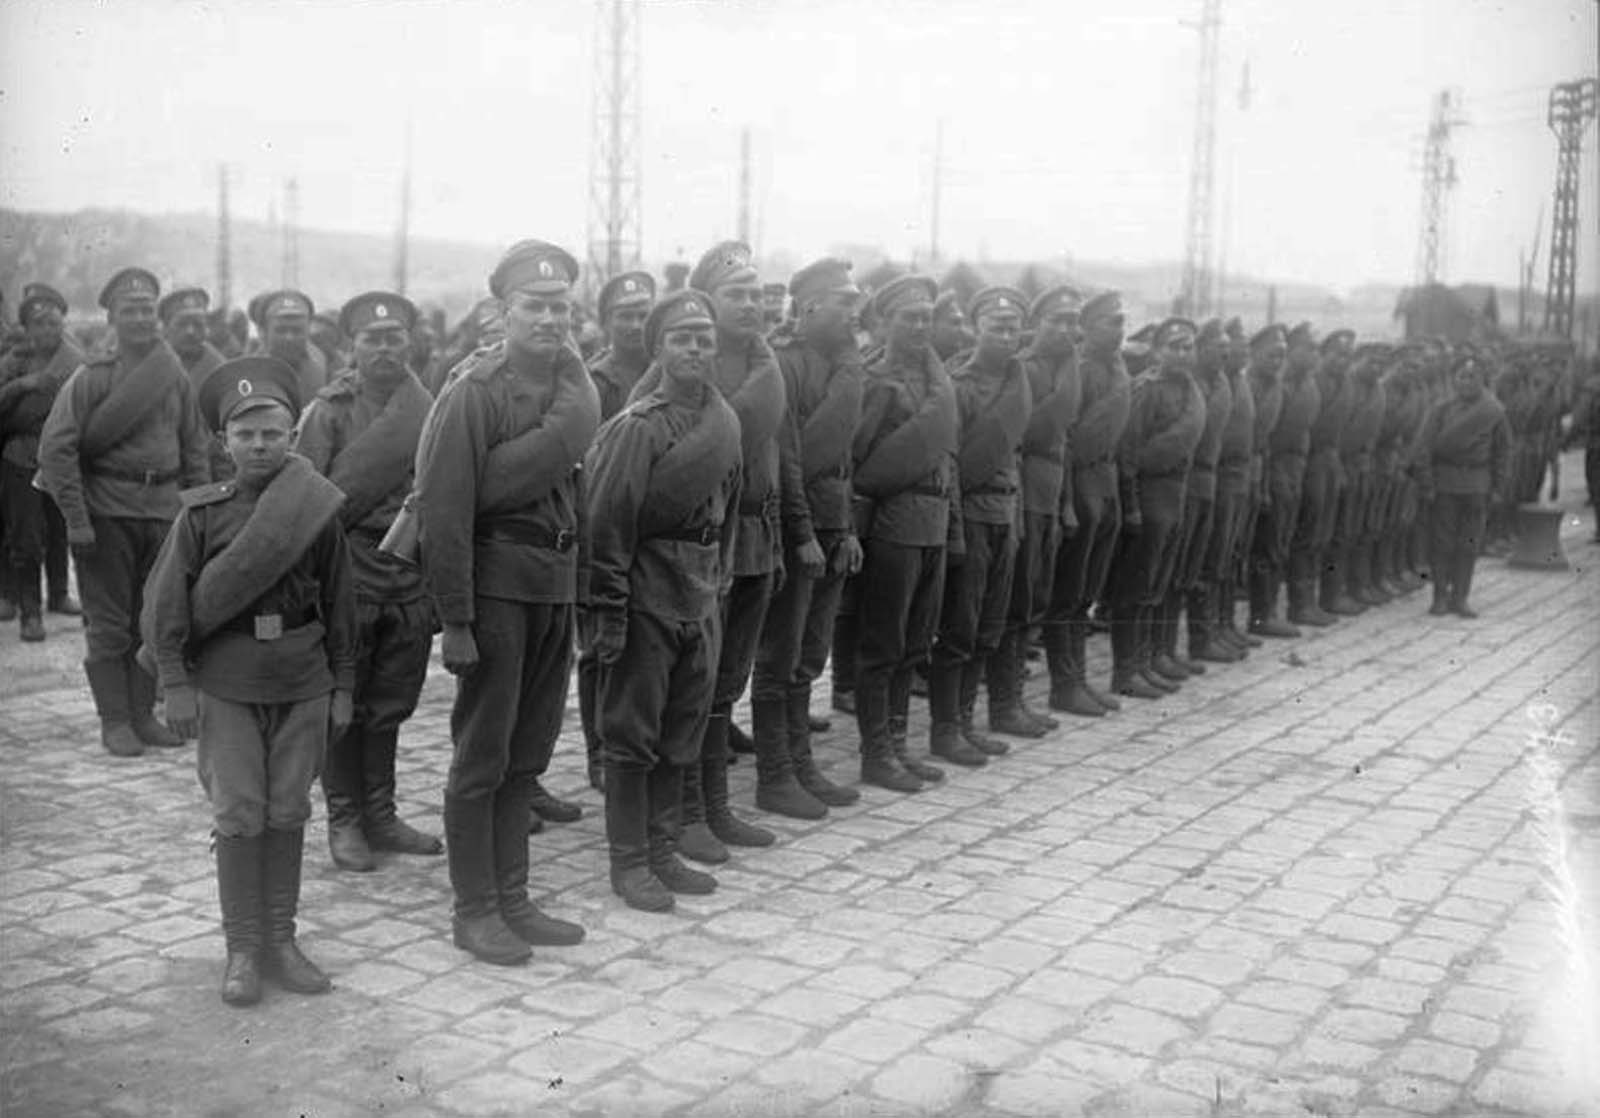 The 1st Russian Special Brigade formed in January, 1916 under the command of General Nikolai Aleksandrovich Lokhvitsky.